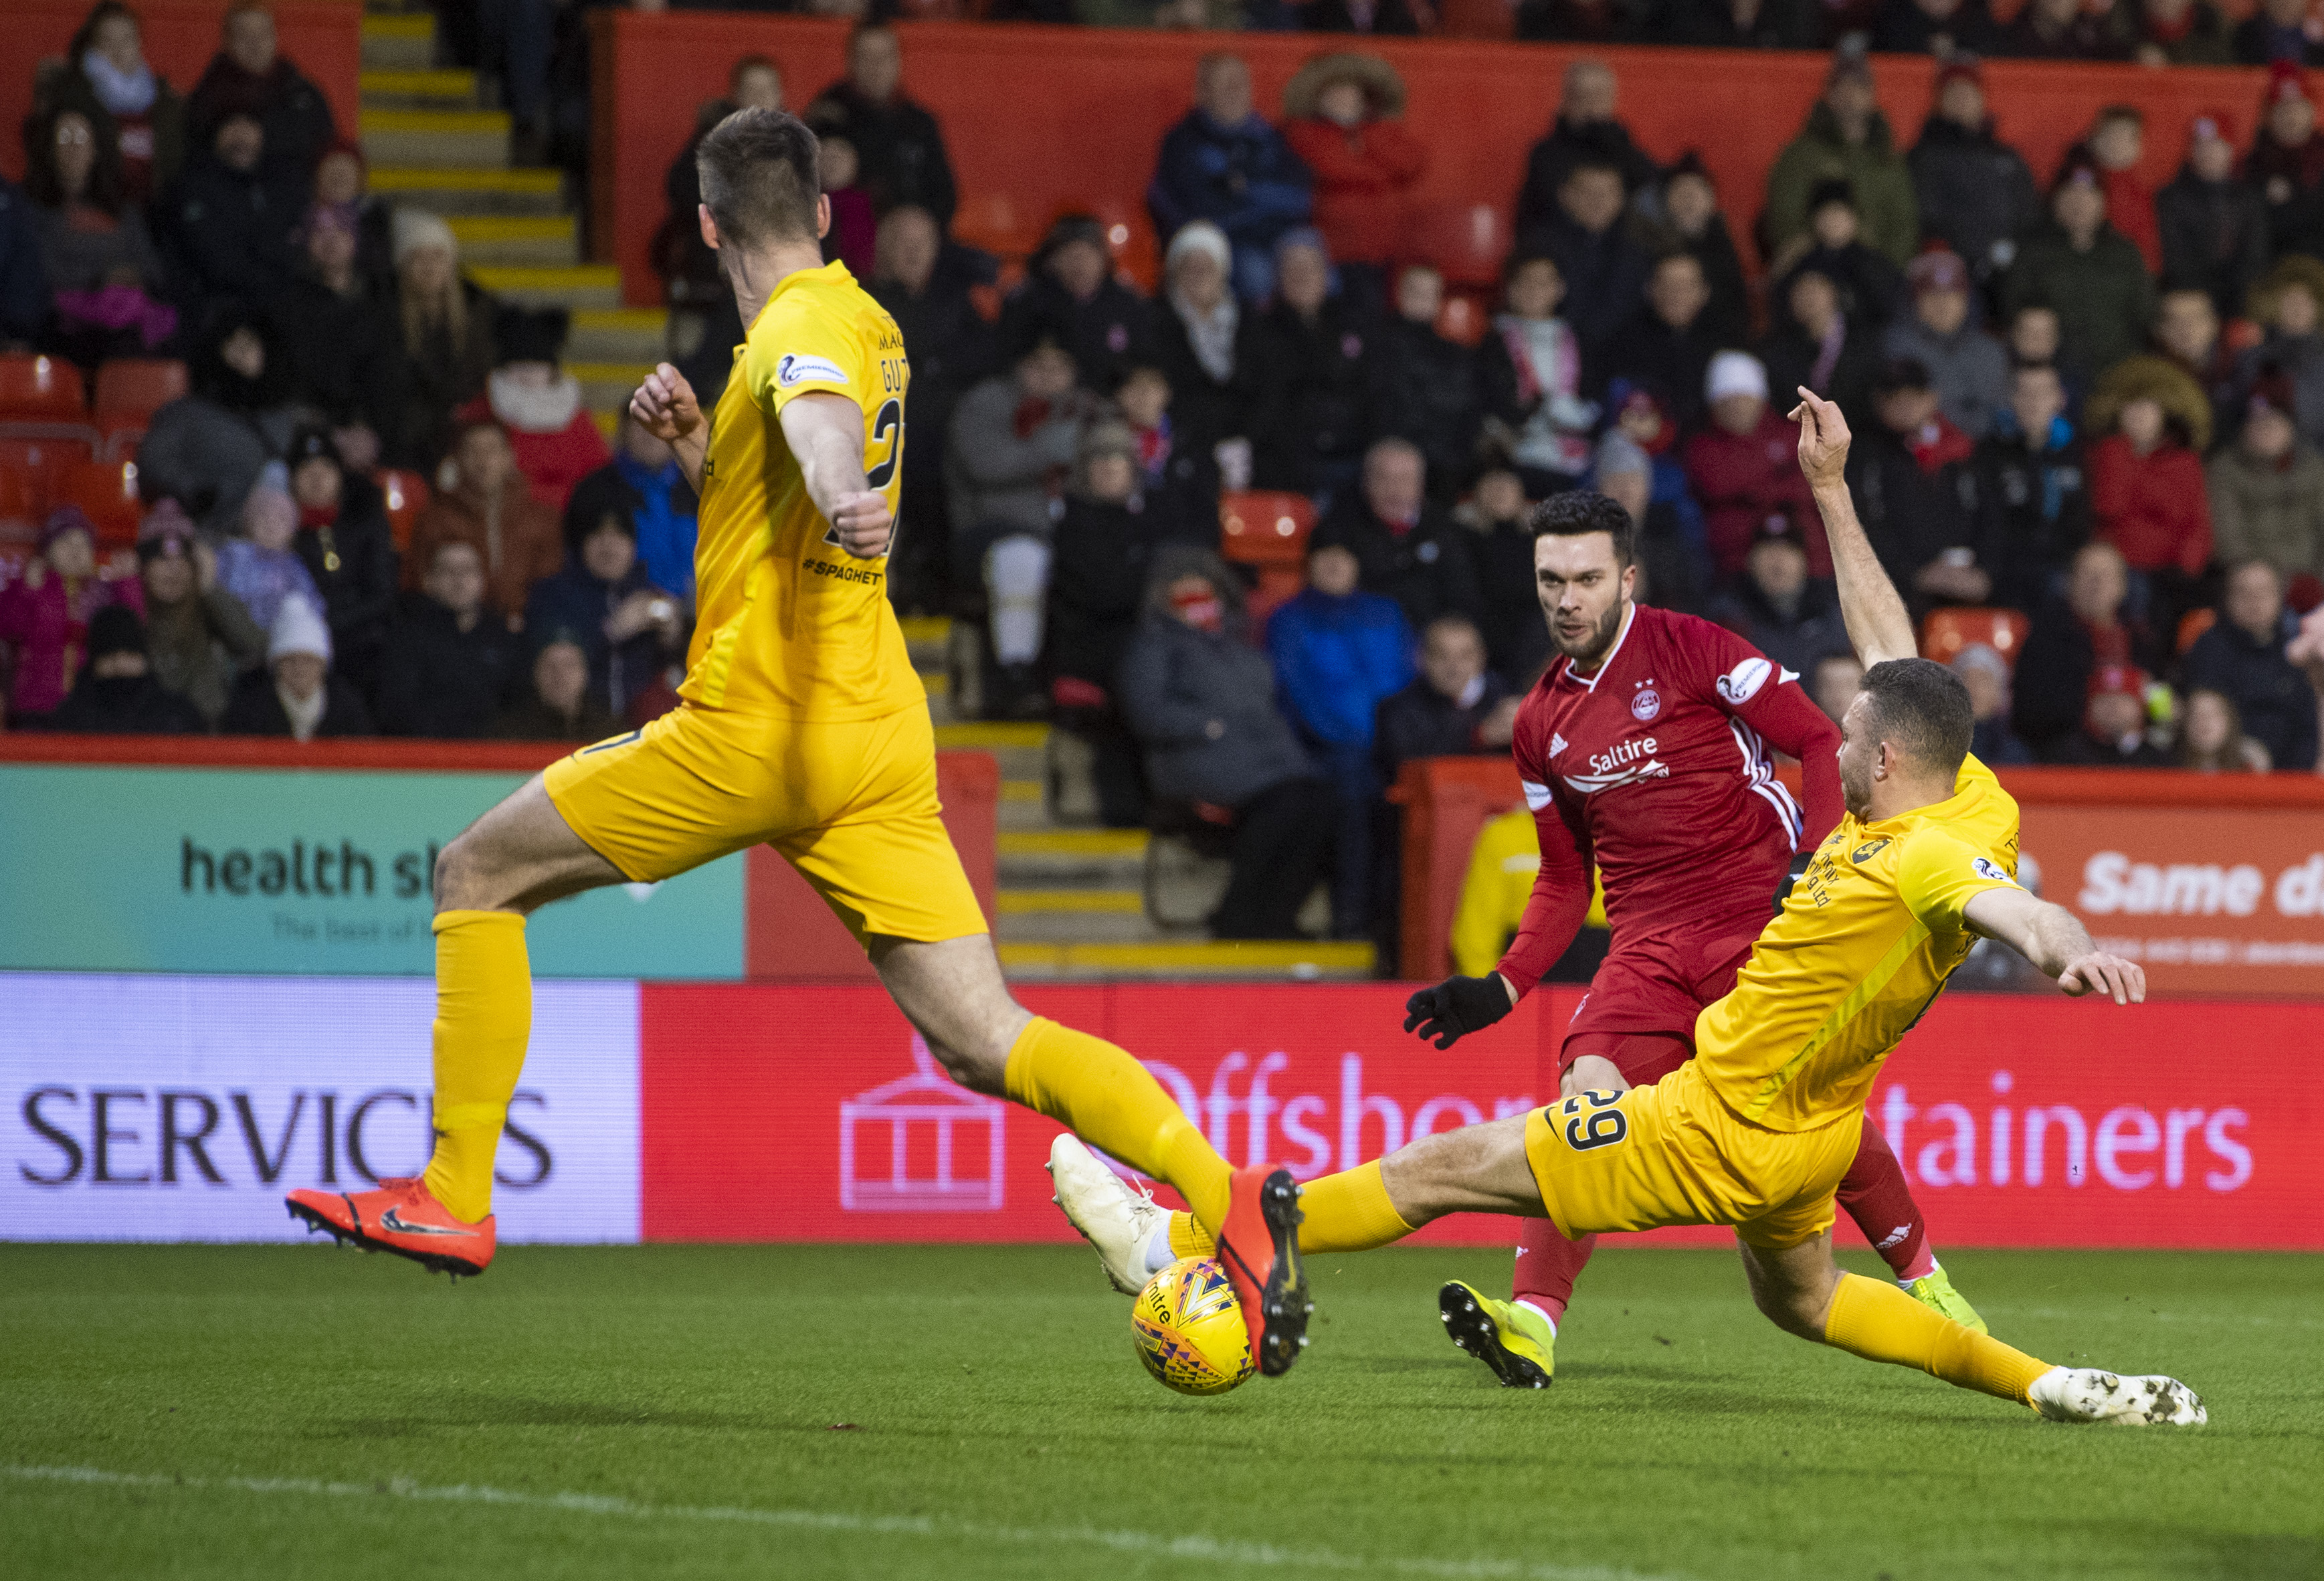 Aberdeen's Connor McLennan makes it 1-0 against Livingston